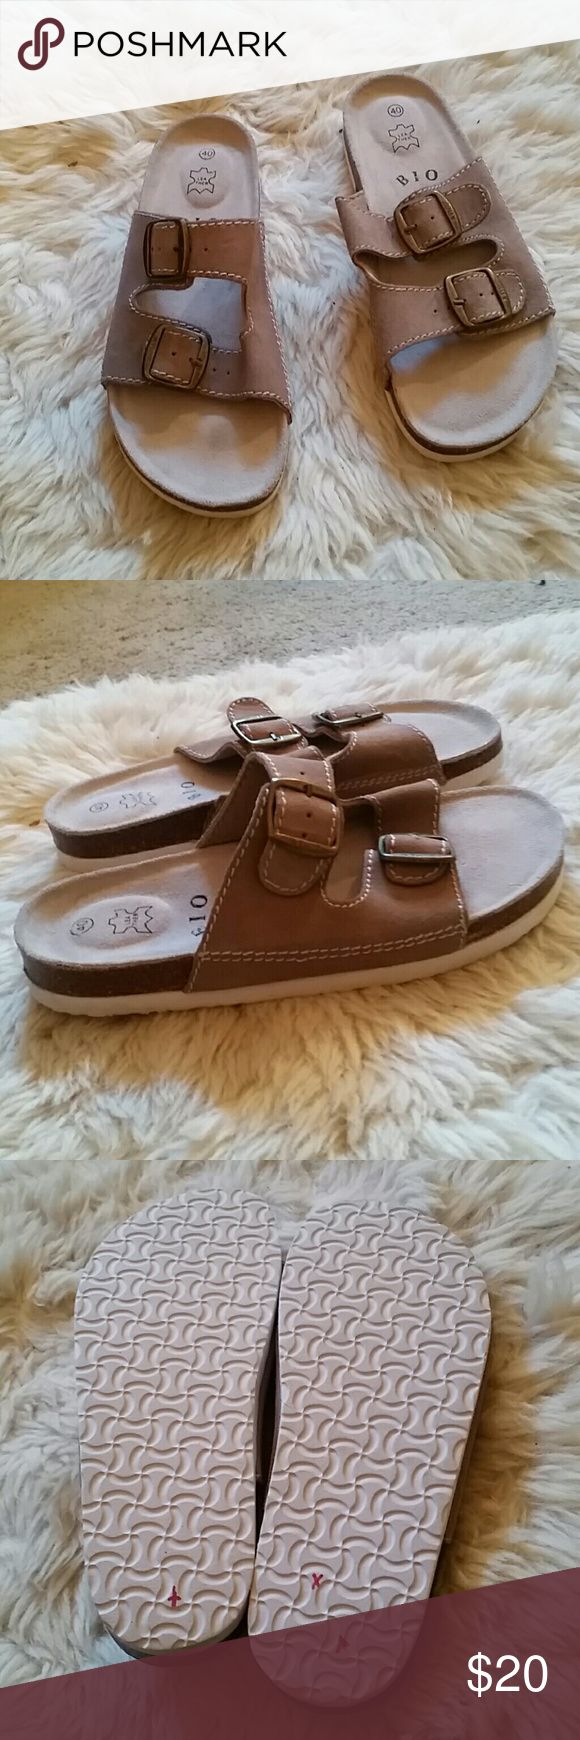 B I O  LEATHER SLIP ON SANDELS B I O LEATHER SLIP ON SANDELS  SIZE EURO 40 US 10 DISPLAY MODEL TRIED ON NOT WORN RIGHT ON STYLE B I O Shoes Sandals